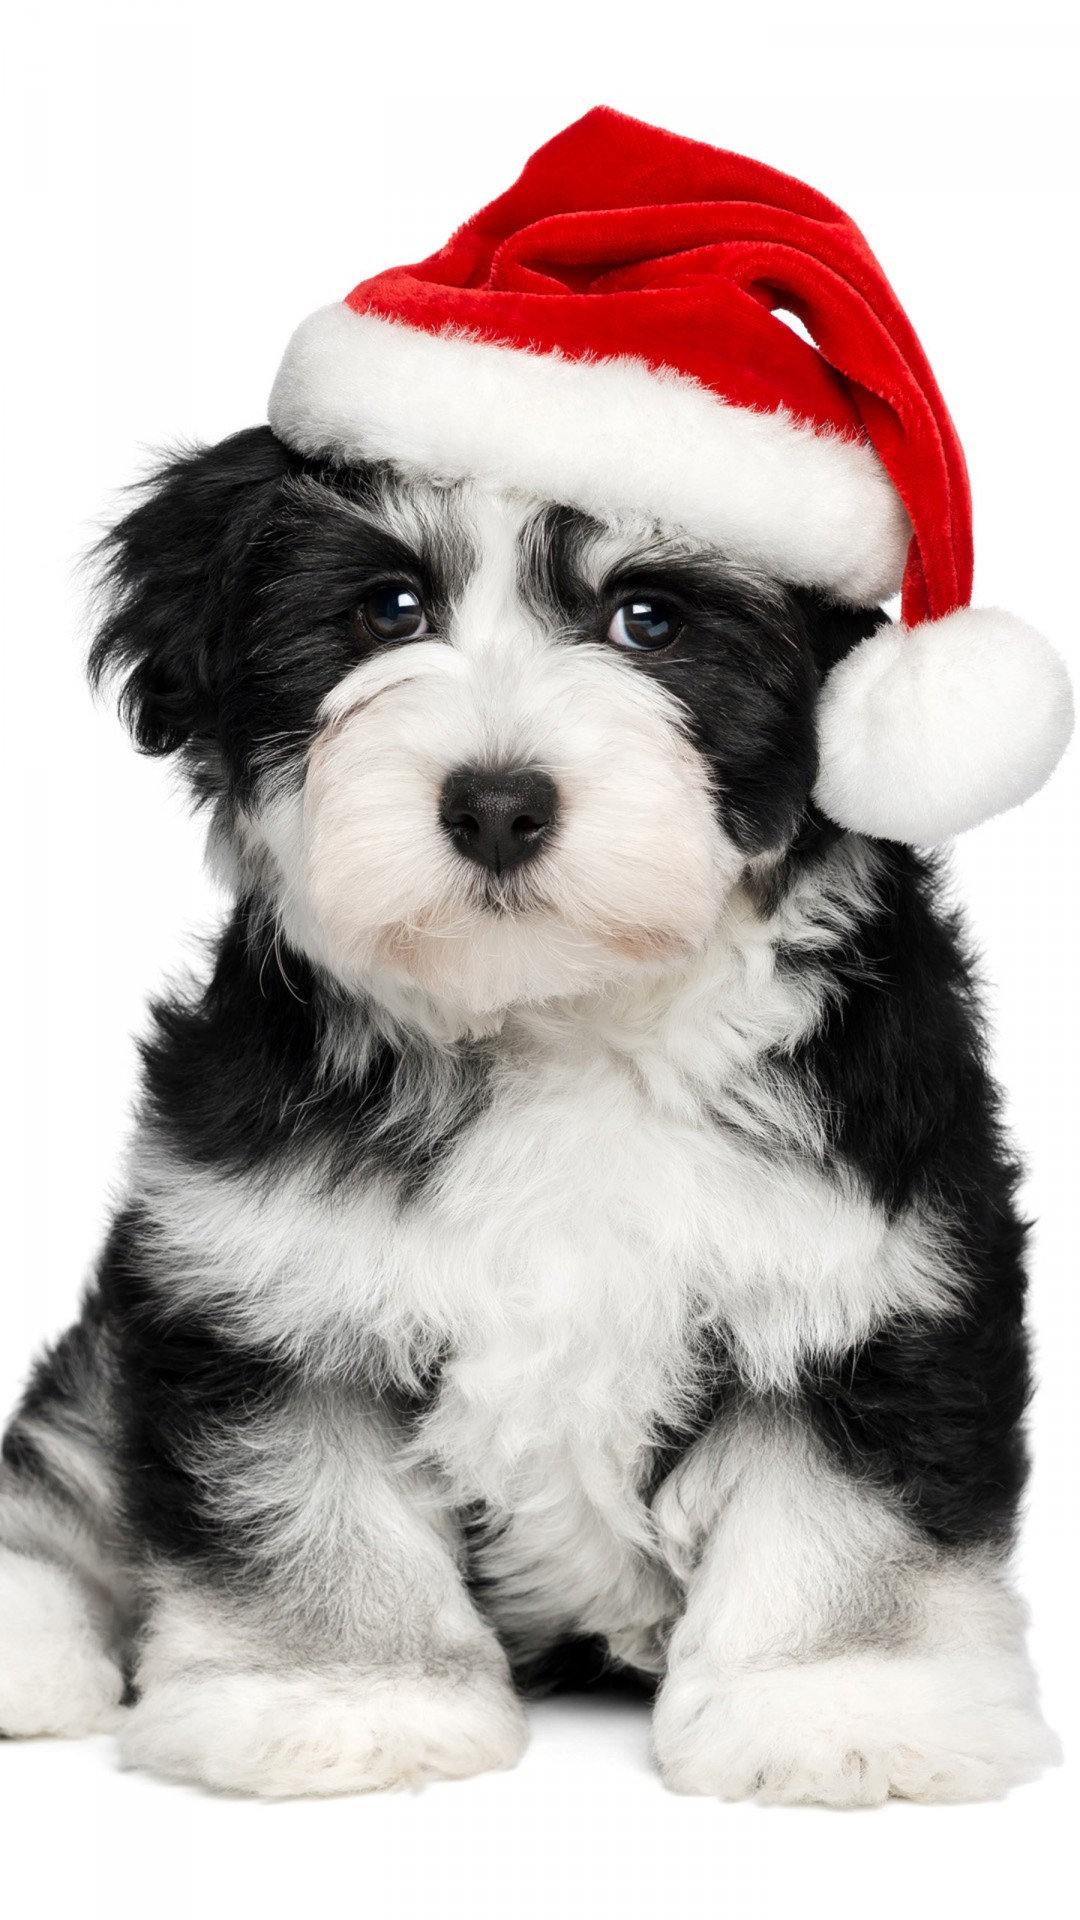 a christmas dog wallpaper background